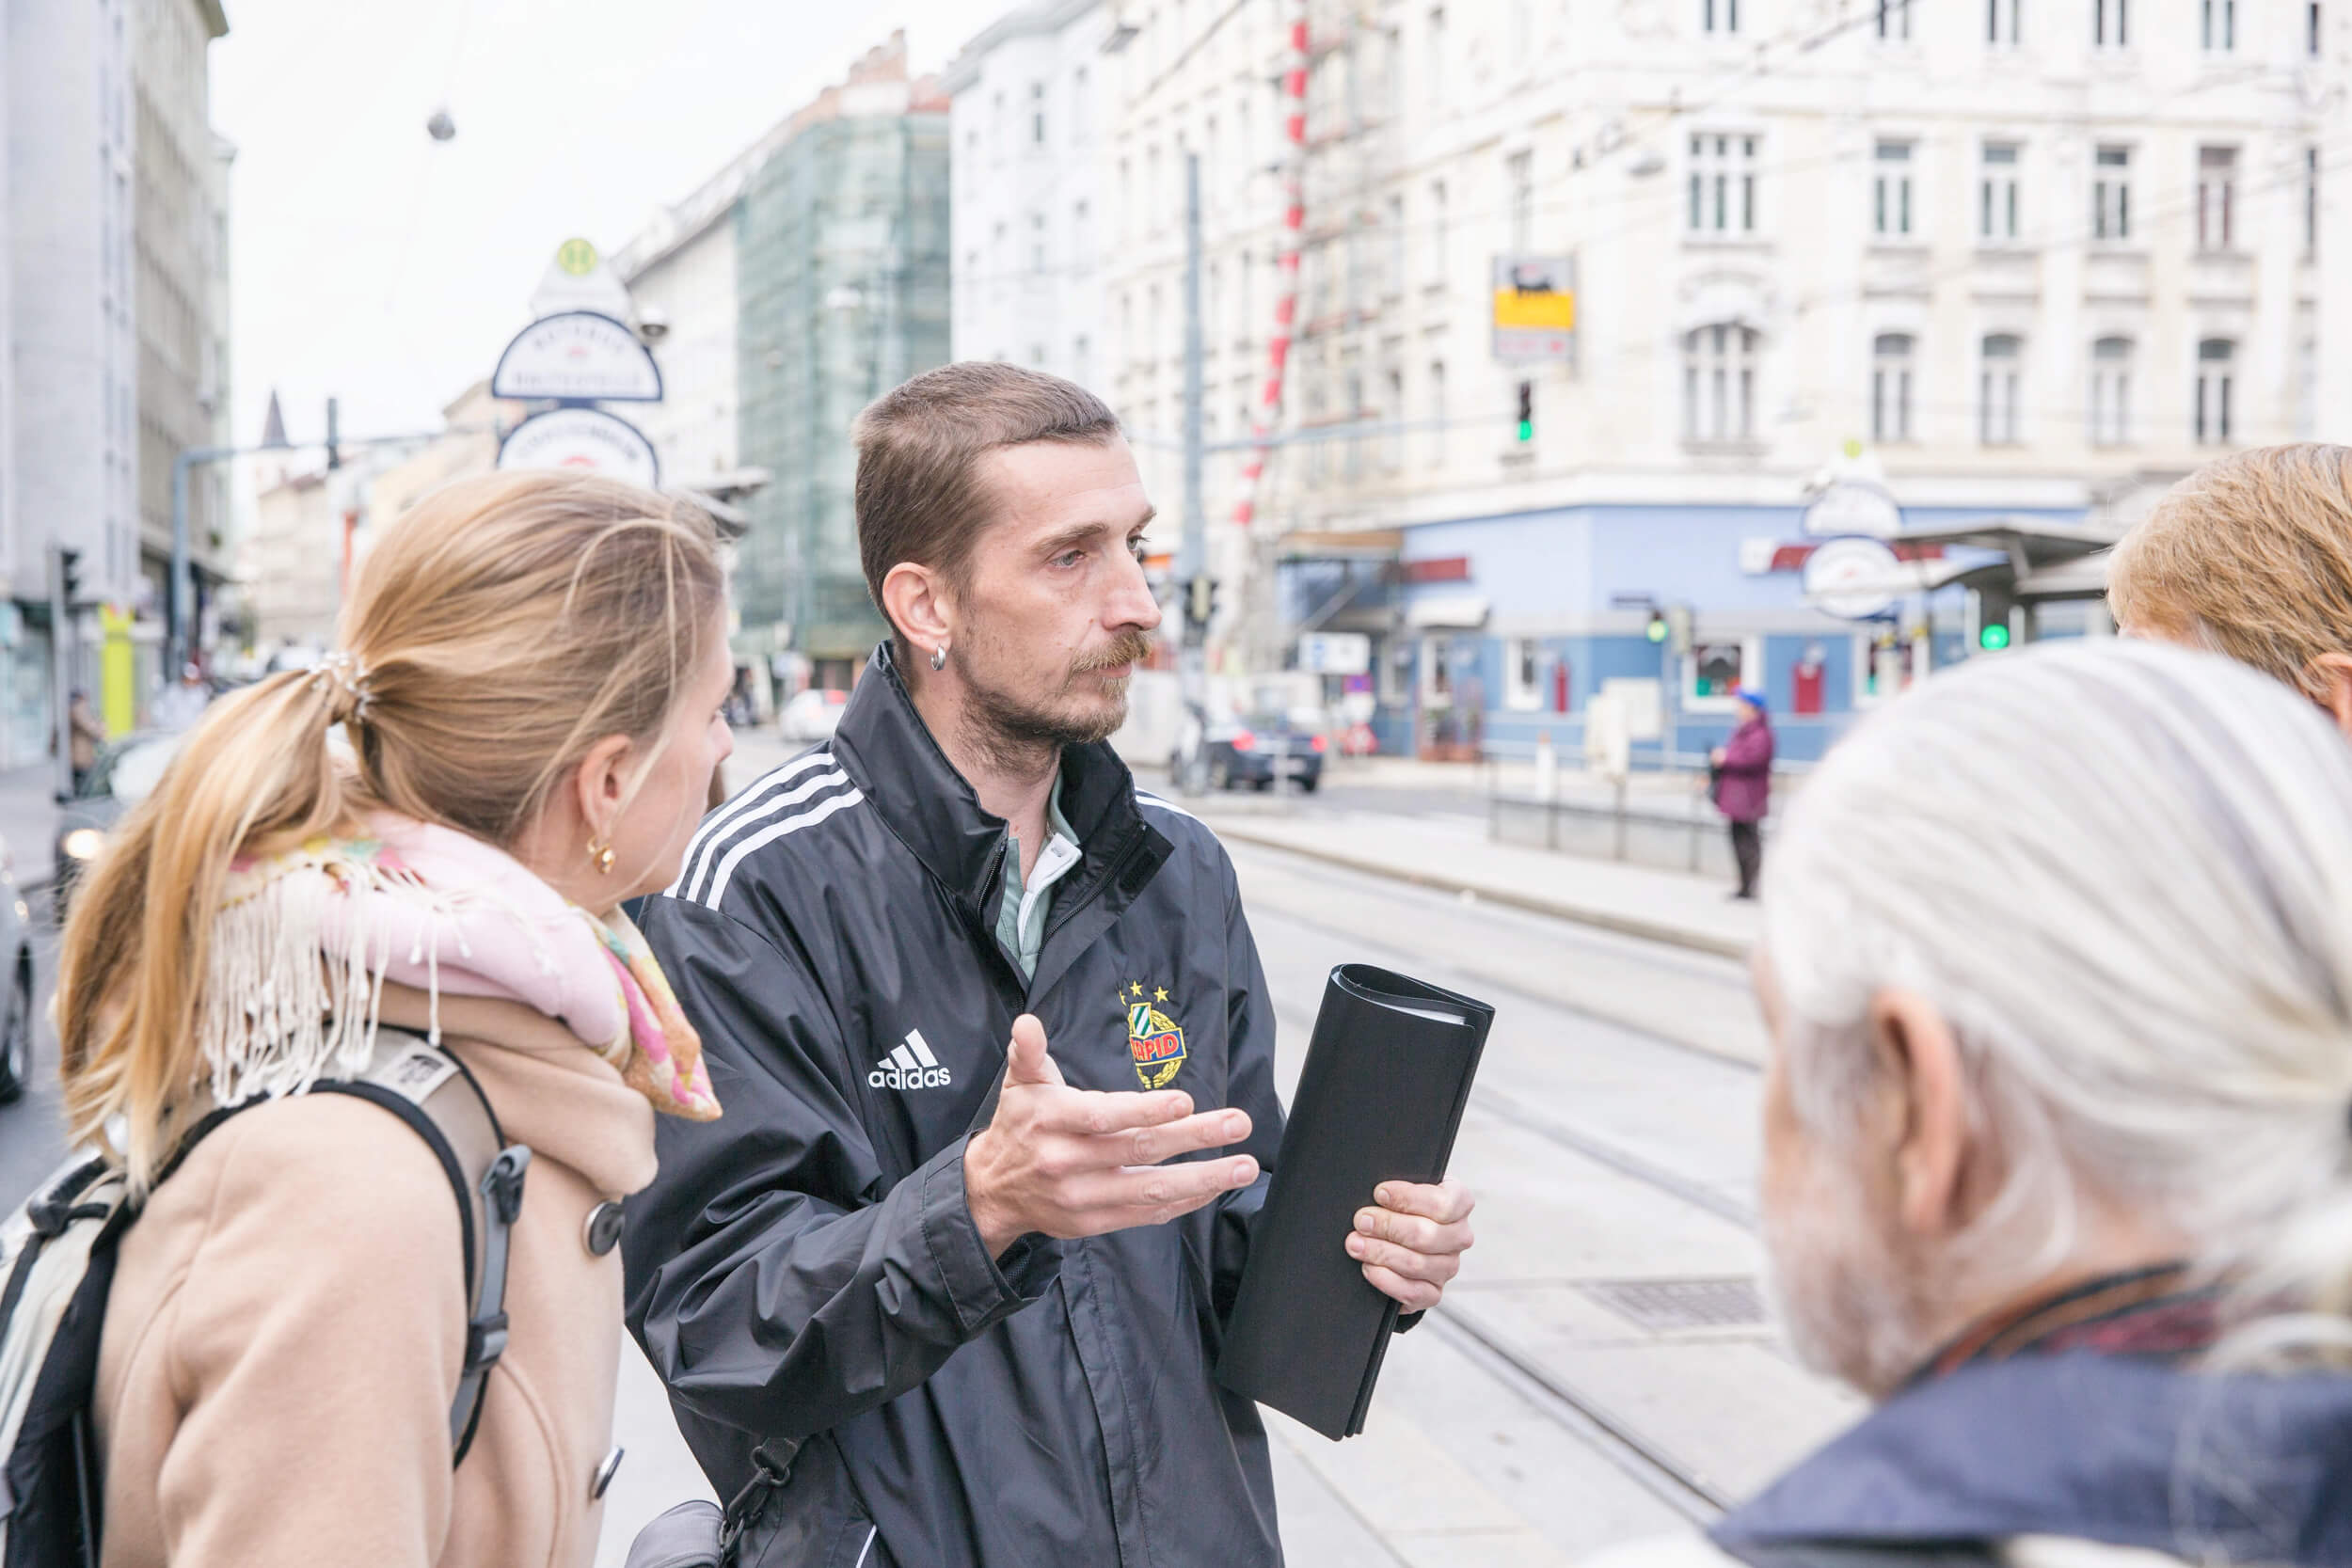 SHADES TOURS: Top things to do in Vienna